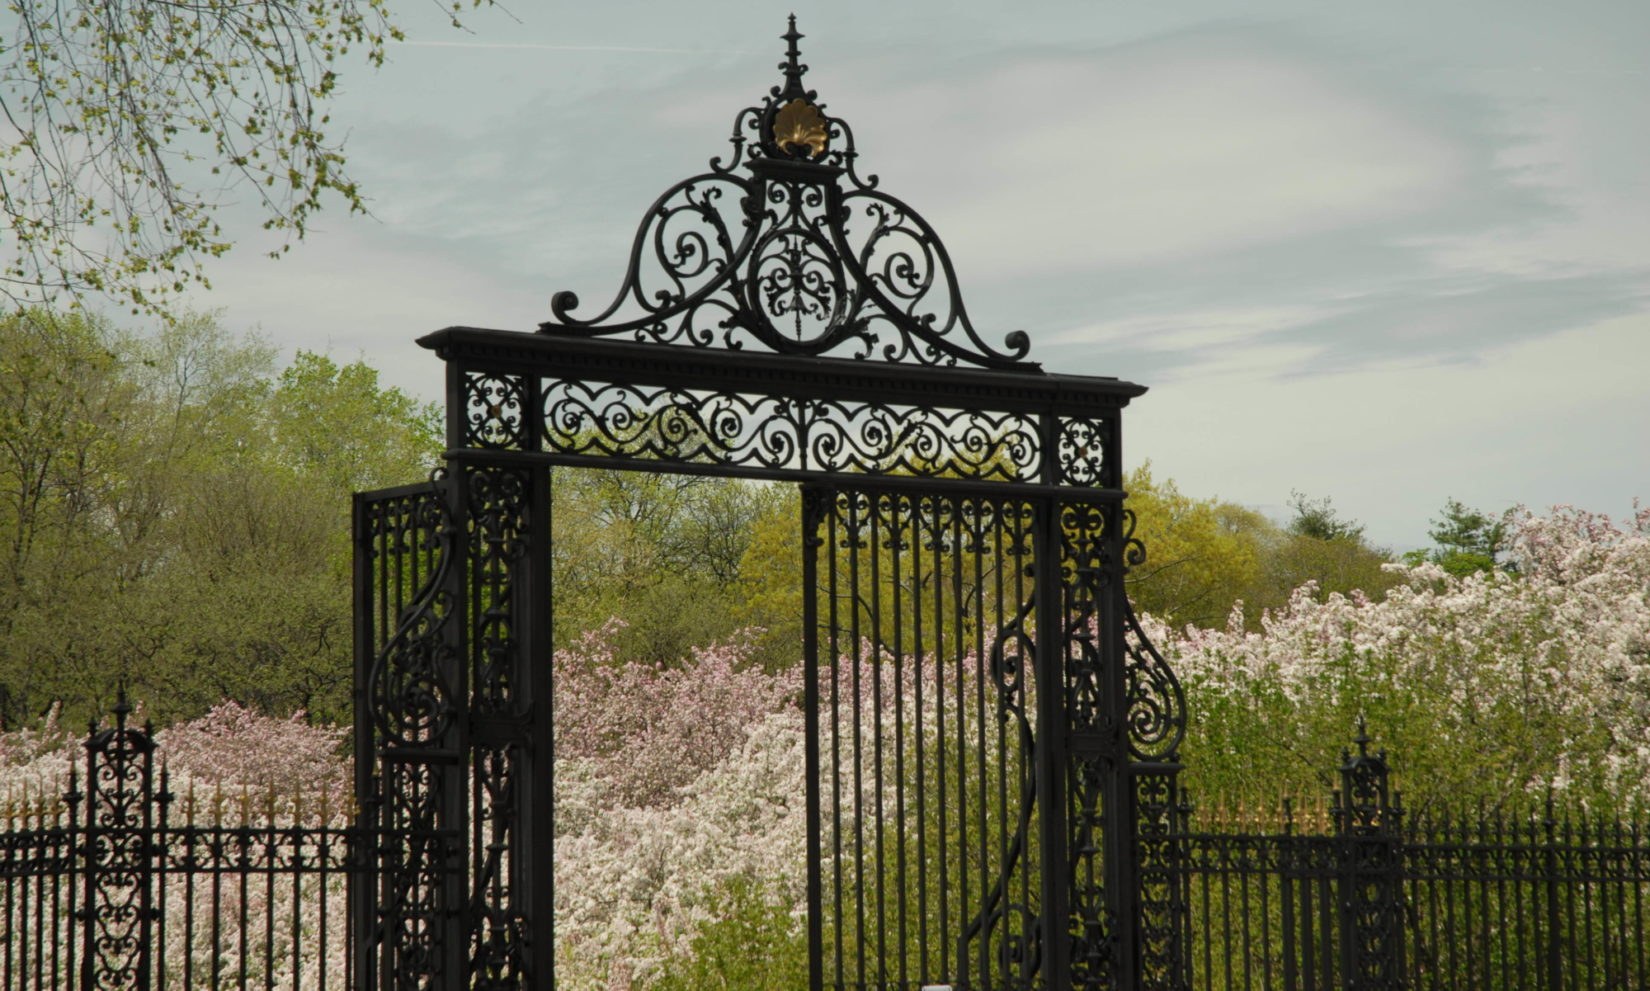 A view of the Vanderbilt Gates, found along the perimeter of Central Park